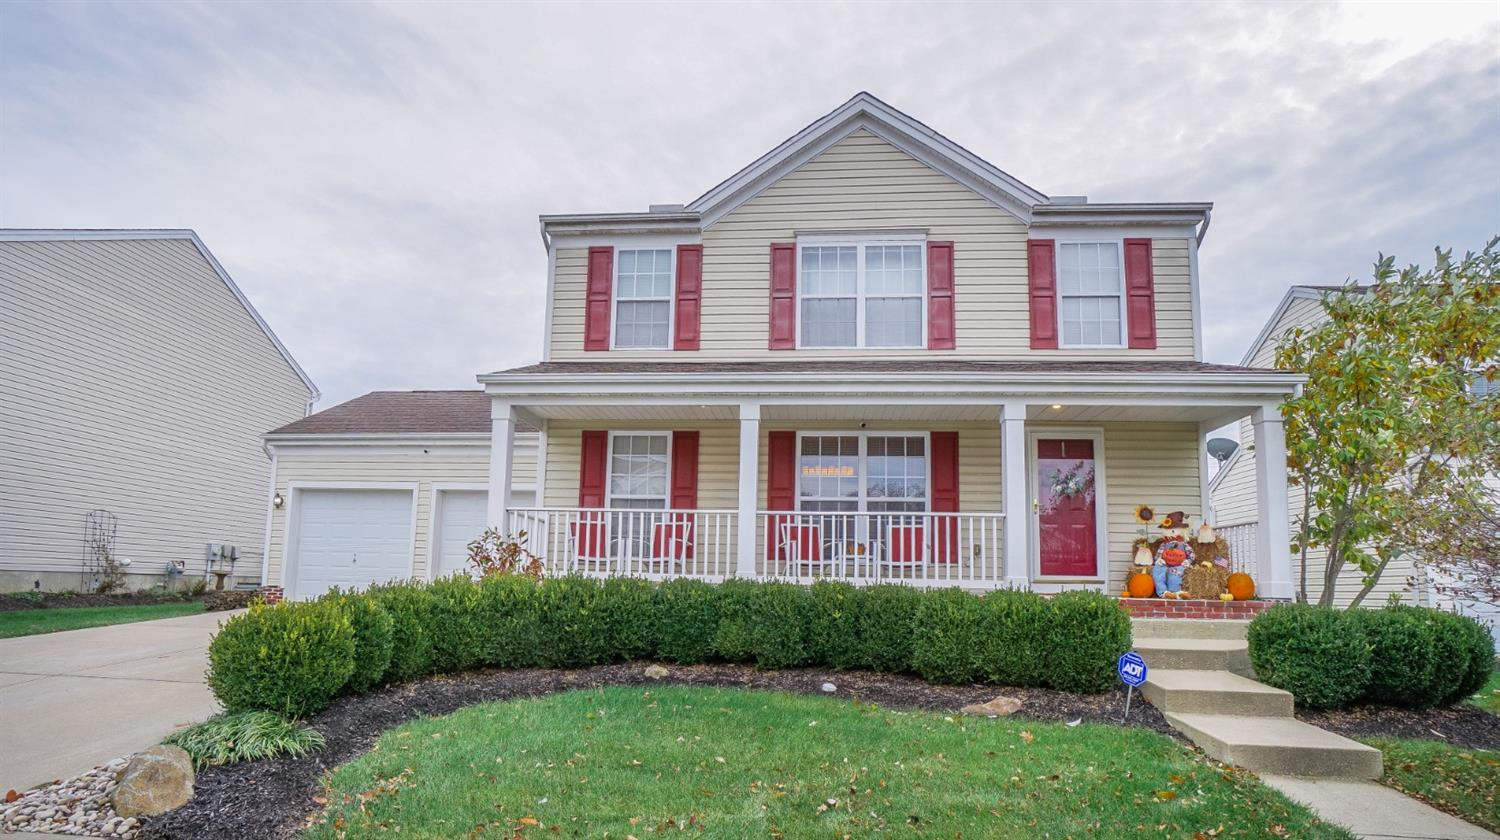 Property for sale at 2167 Villagepointe Drive, Batavia Twp,  OH 45103